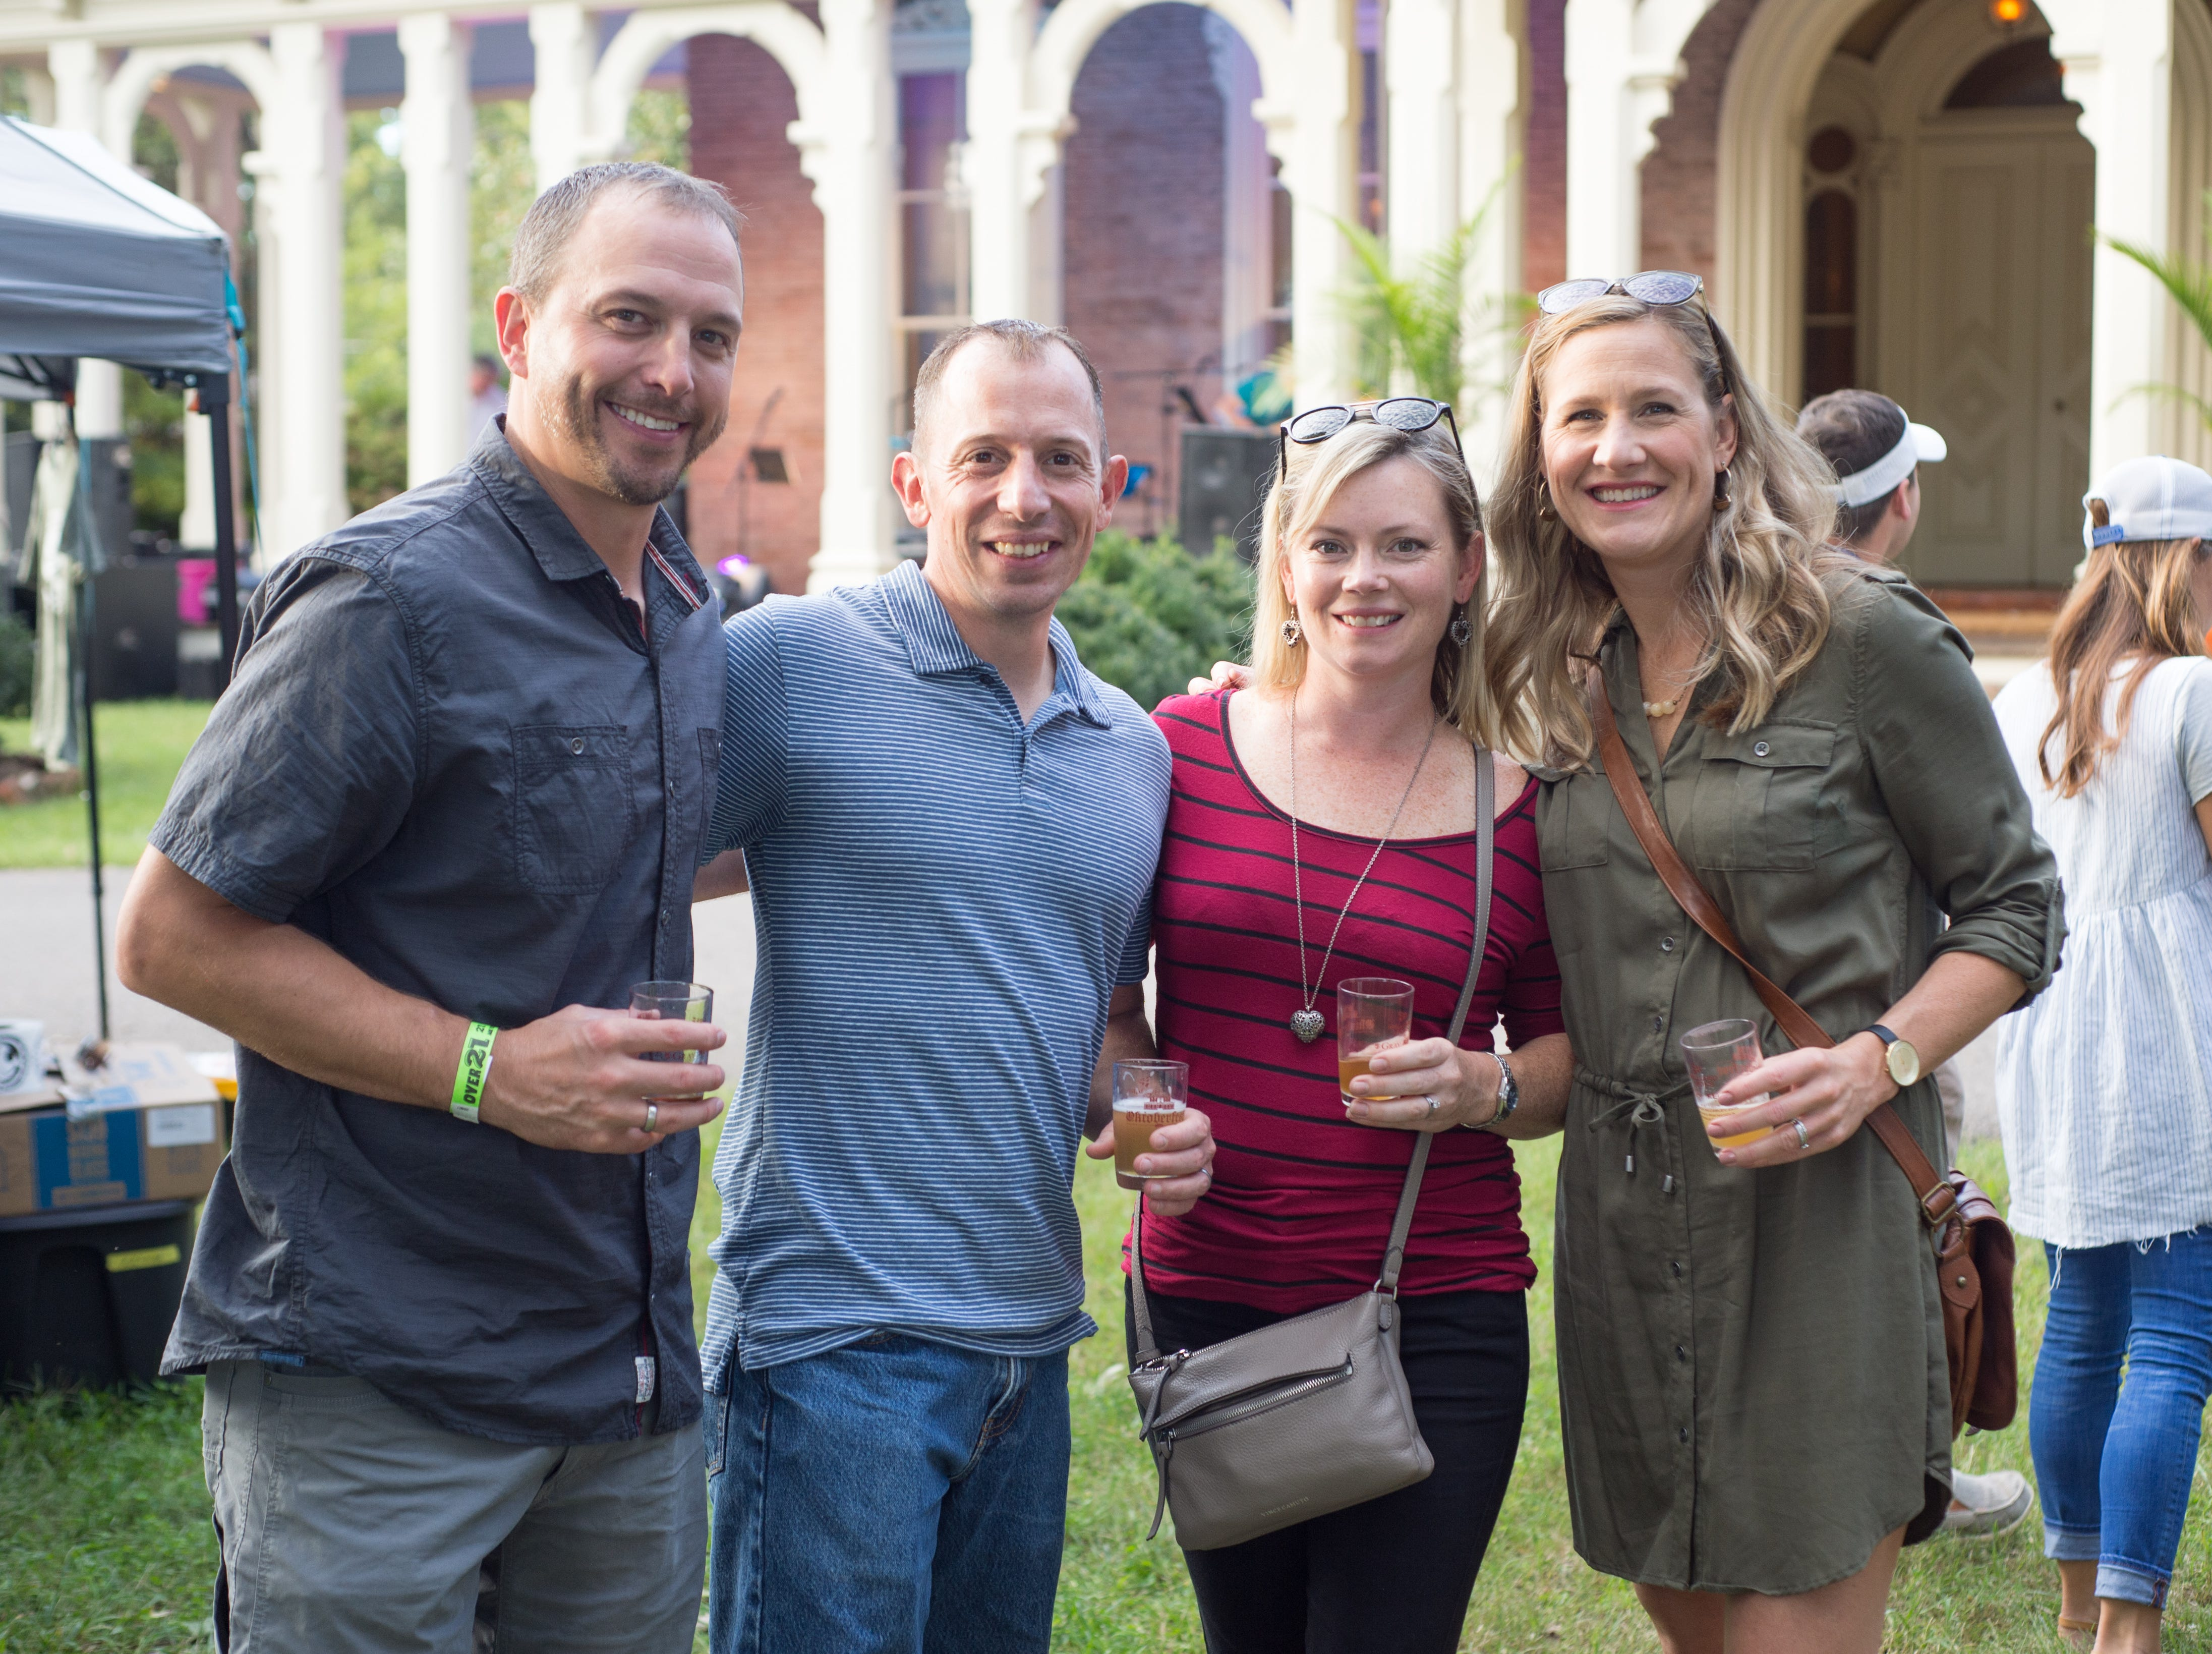 Greg Graham, Anthony and Jody Fontanetta and Kim Graham have fun during Oktoberfest at Oaklands Mansion in Murfreesboro on Saturday, Sept. 29.